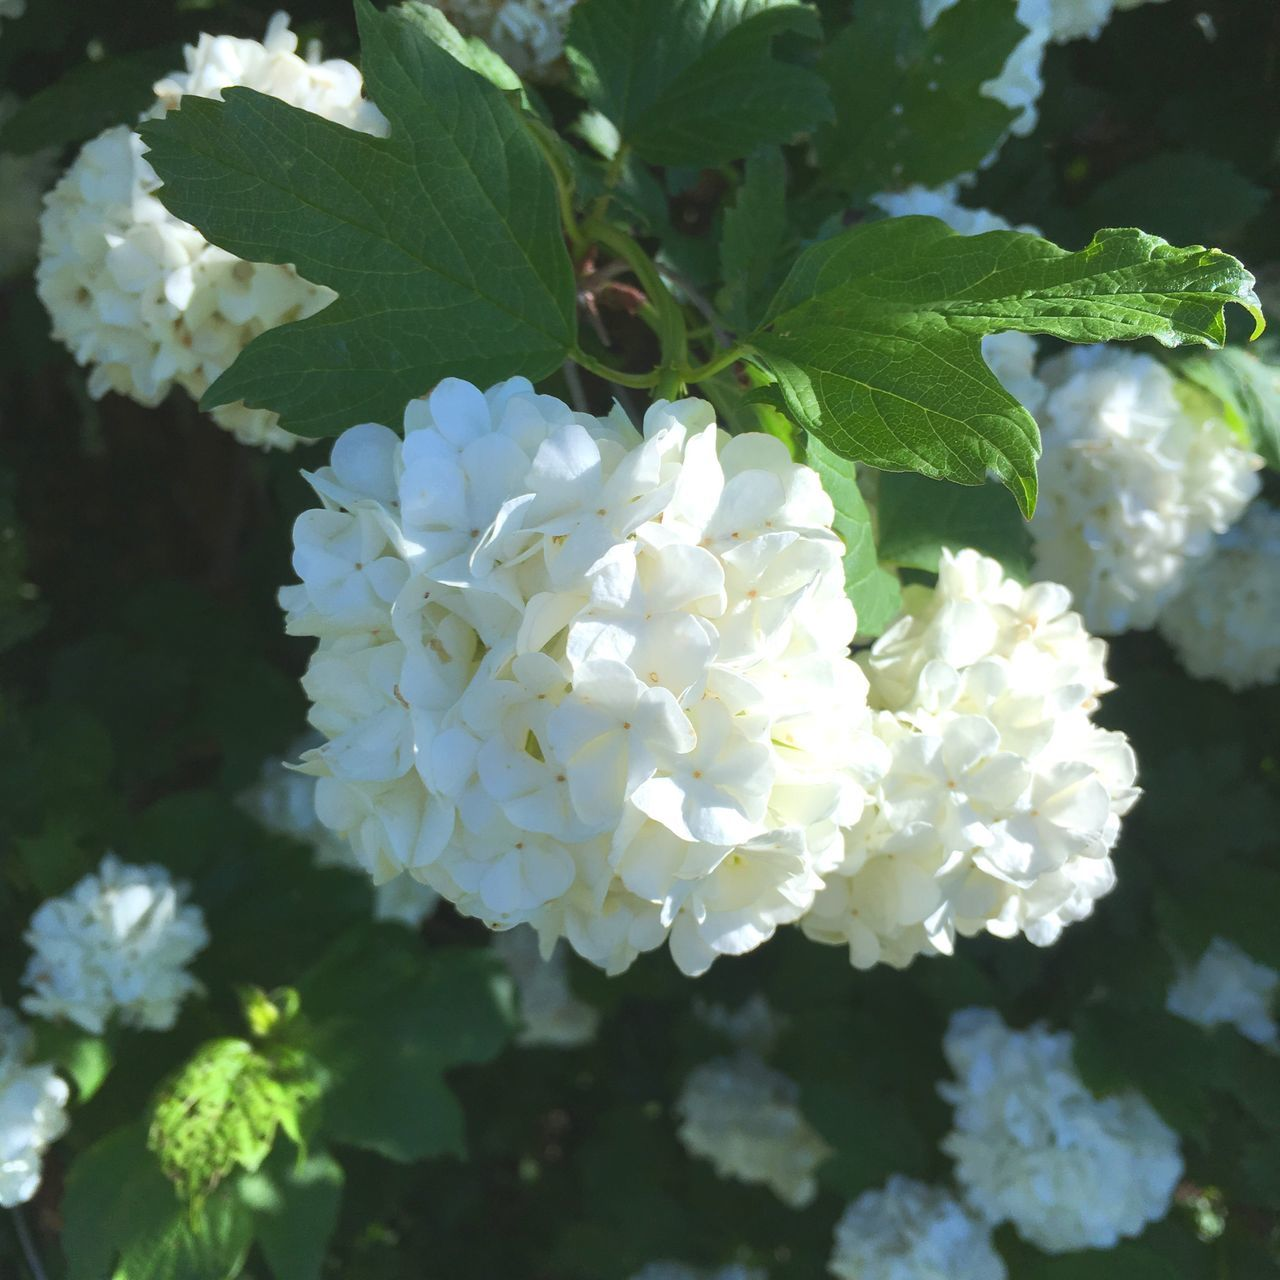 Flower White Color Beauty In Nature Nature Plant Growth Fragility Leaf Petal Freshness Day Blooming Outdoors No People Flower Head Hydrangea Close-up Tree